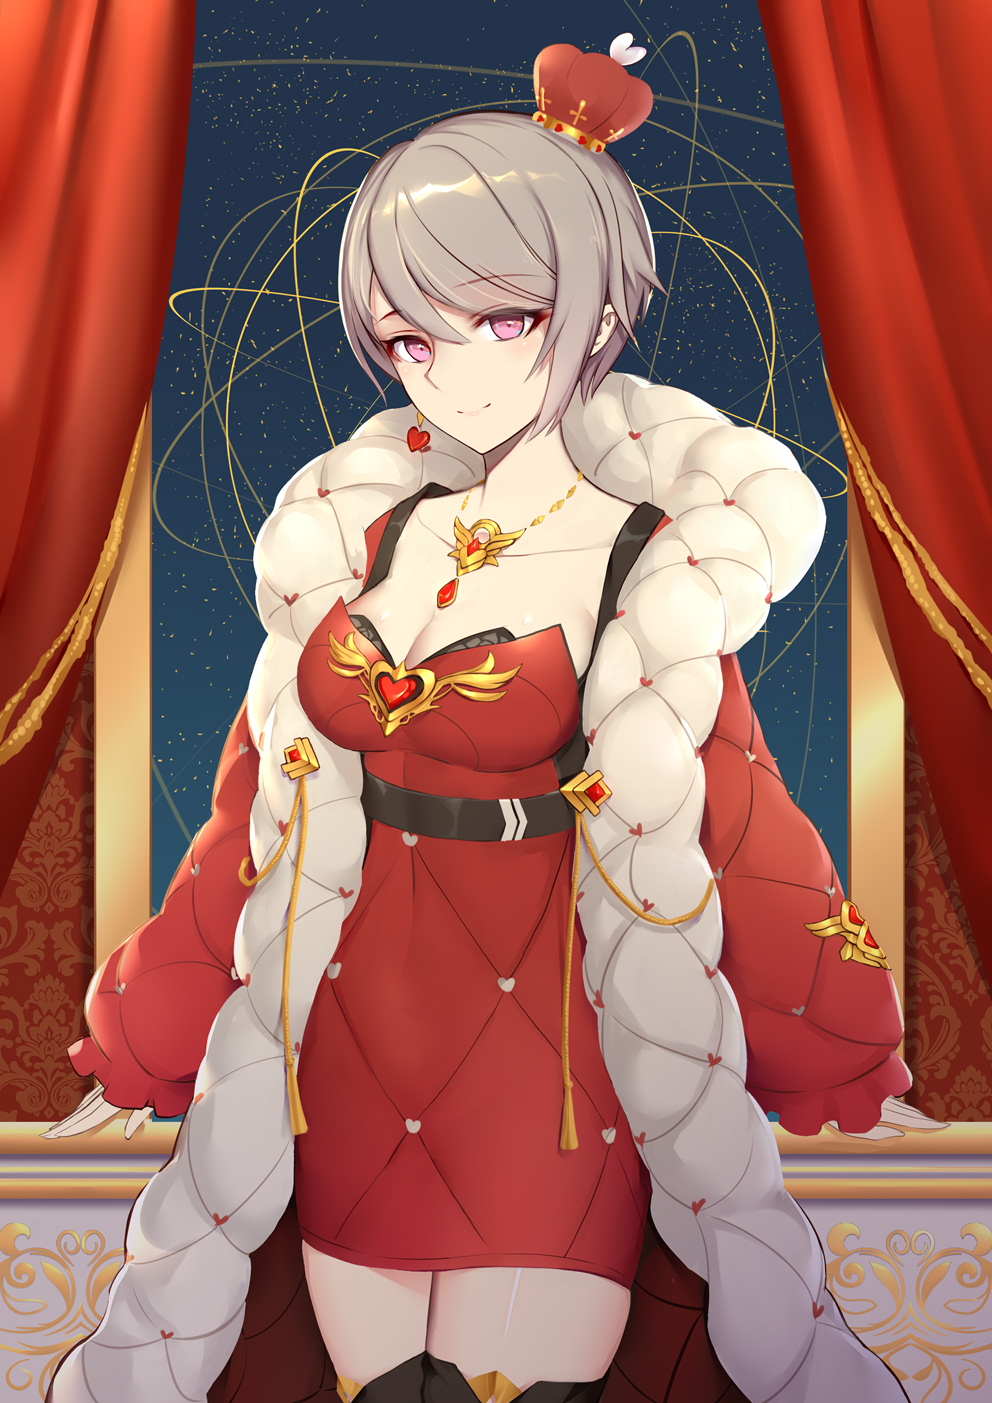 1girl alternate_costume bangs belt black_bra boots bra breasts cleavage closed_mouth coat collarbone crown curtains dress gloves highres honkai_(series) honkai_impact_3 indoors jewelry leaning liu_lan looking_at_viewer necklace open_clothes open_coat red_dress rita_rossweisse short_hair sidelocks smile solo thigh-highs thigh_boots underwear violet_eyes window